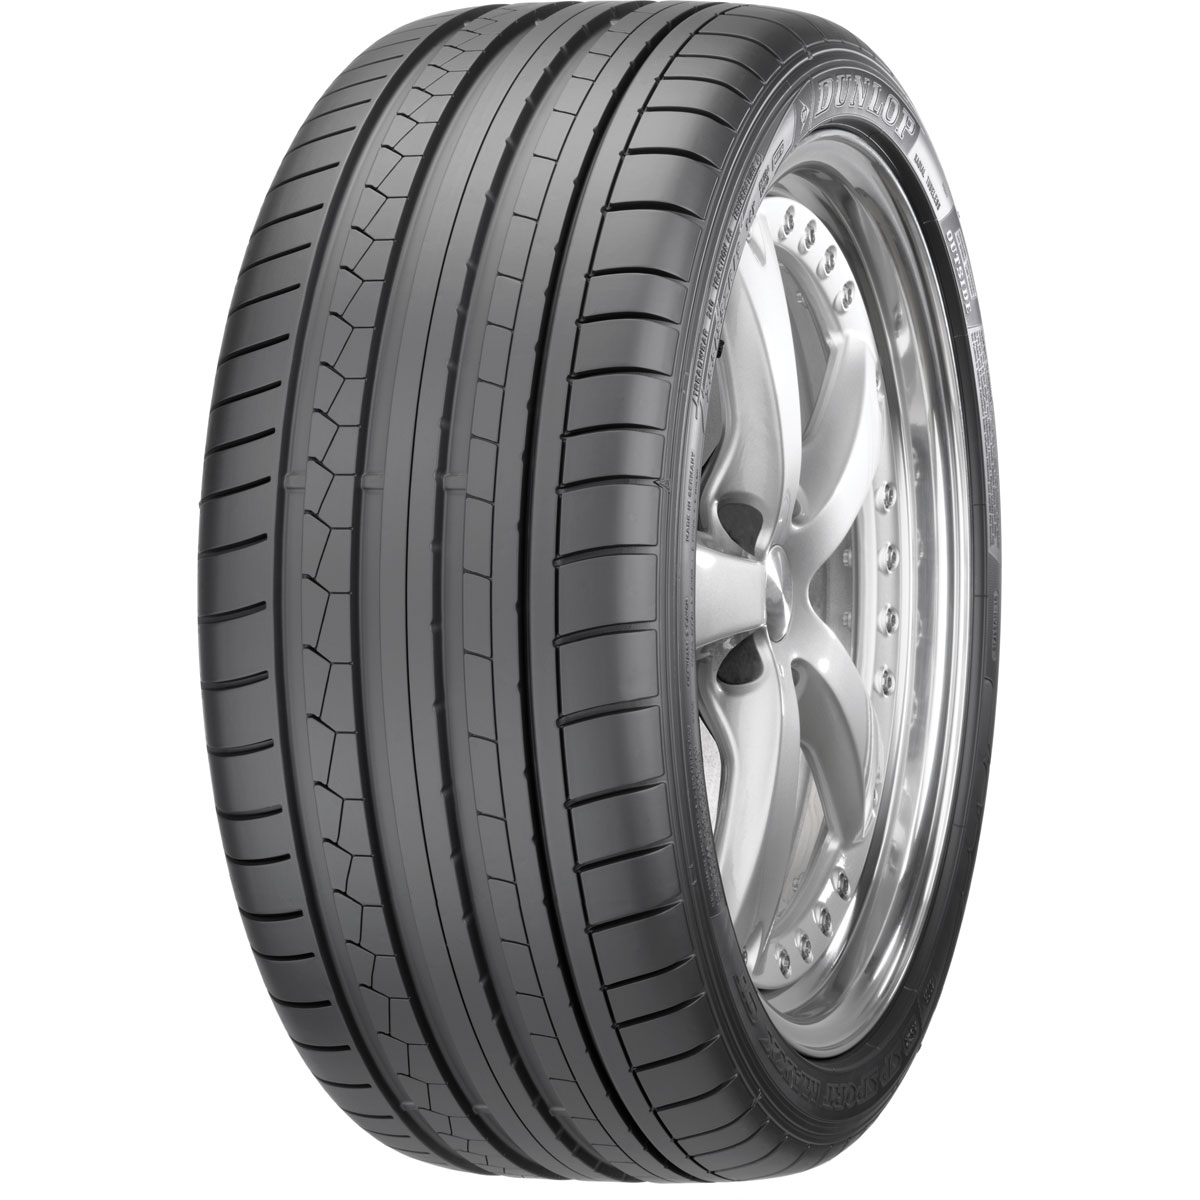 Gomme Nuove Dunlop 255/45 R17 98Y SP.MAXX GT MO MFS pneumatici nuovi Estivo